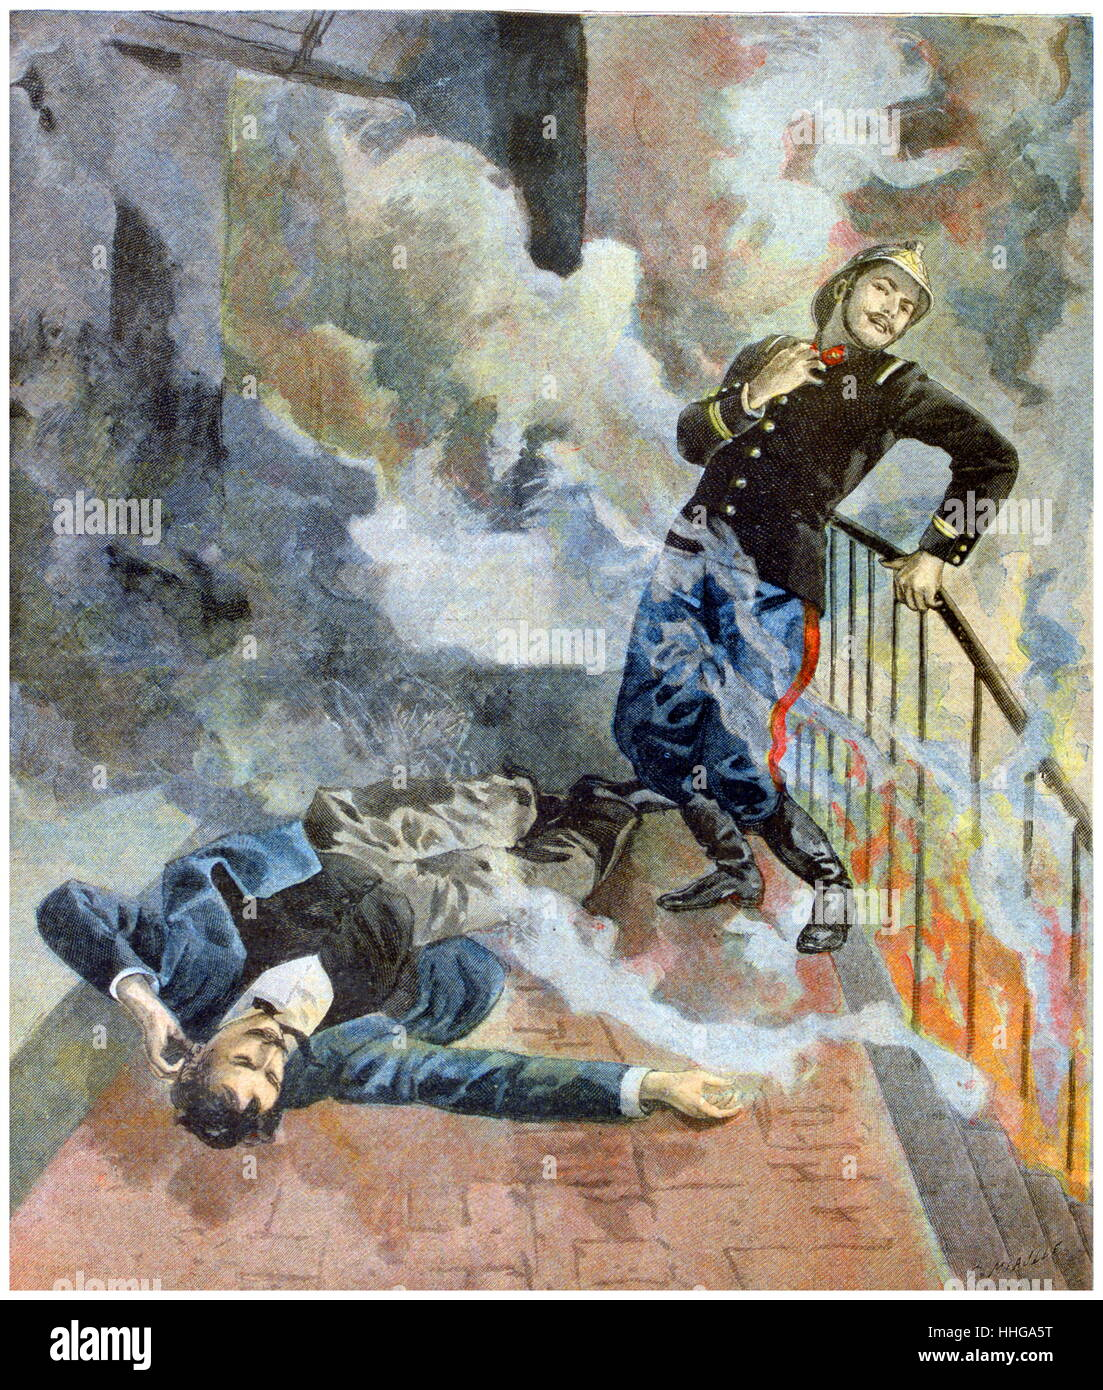 Illustration showing French fireman and civilian overcome by fumes during a fire. 1899 - Stock Image